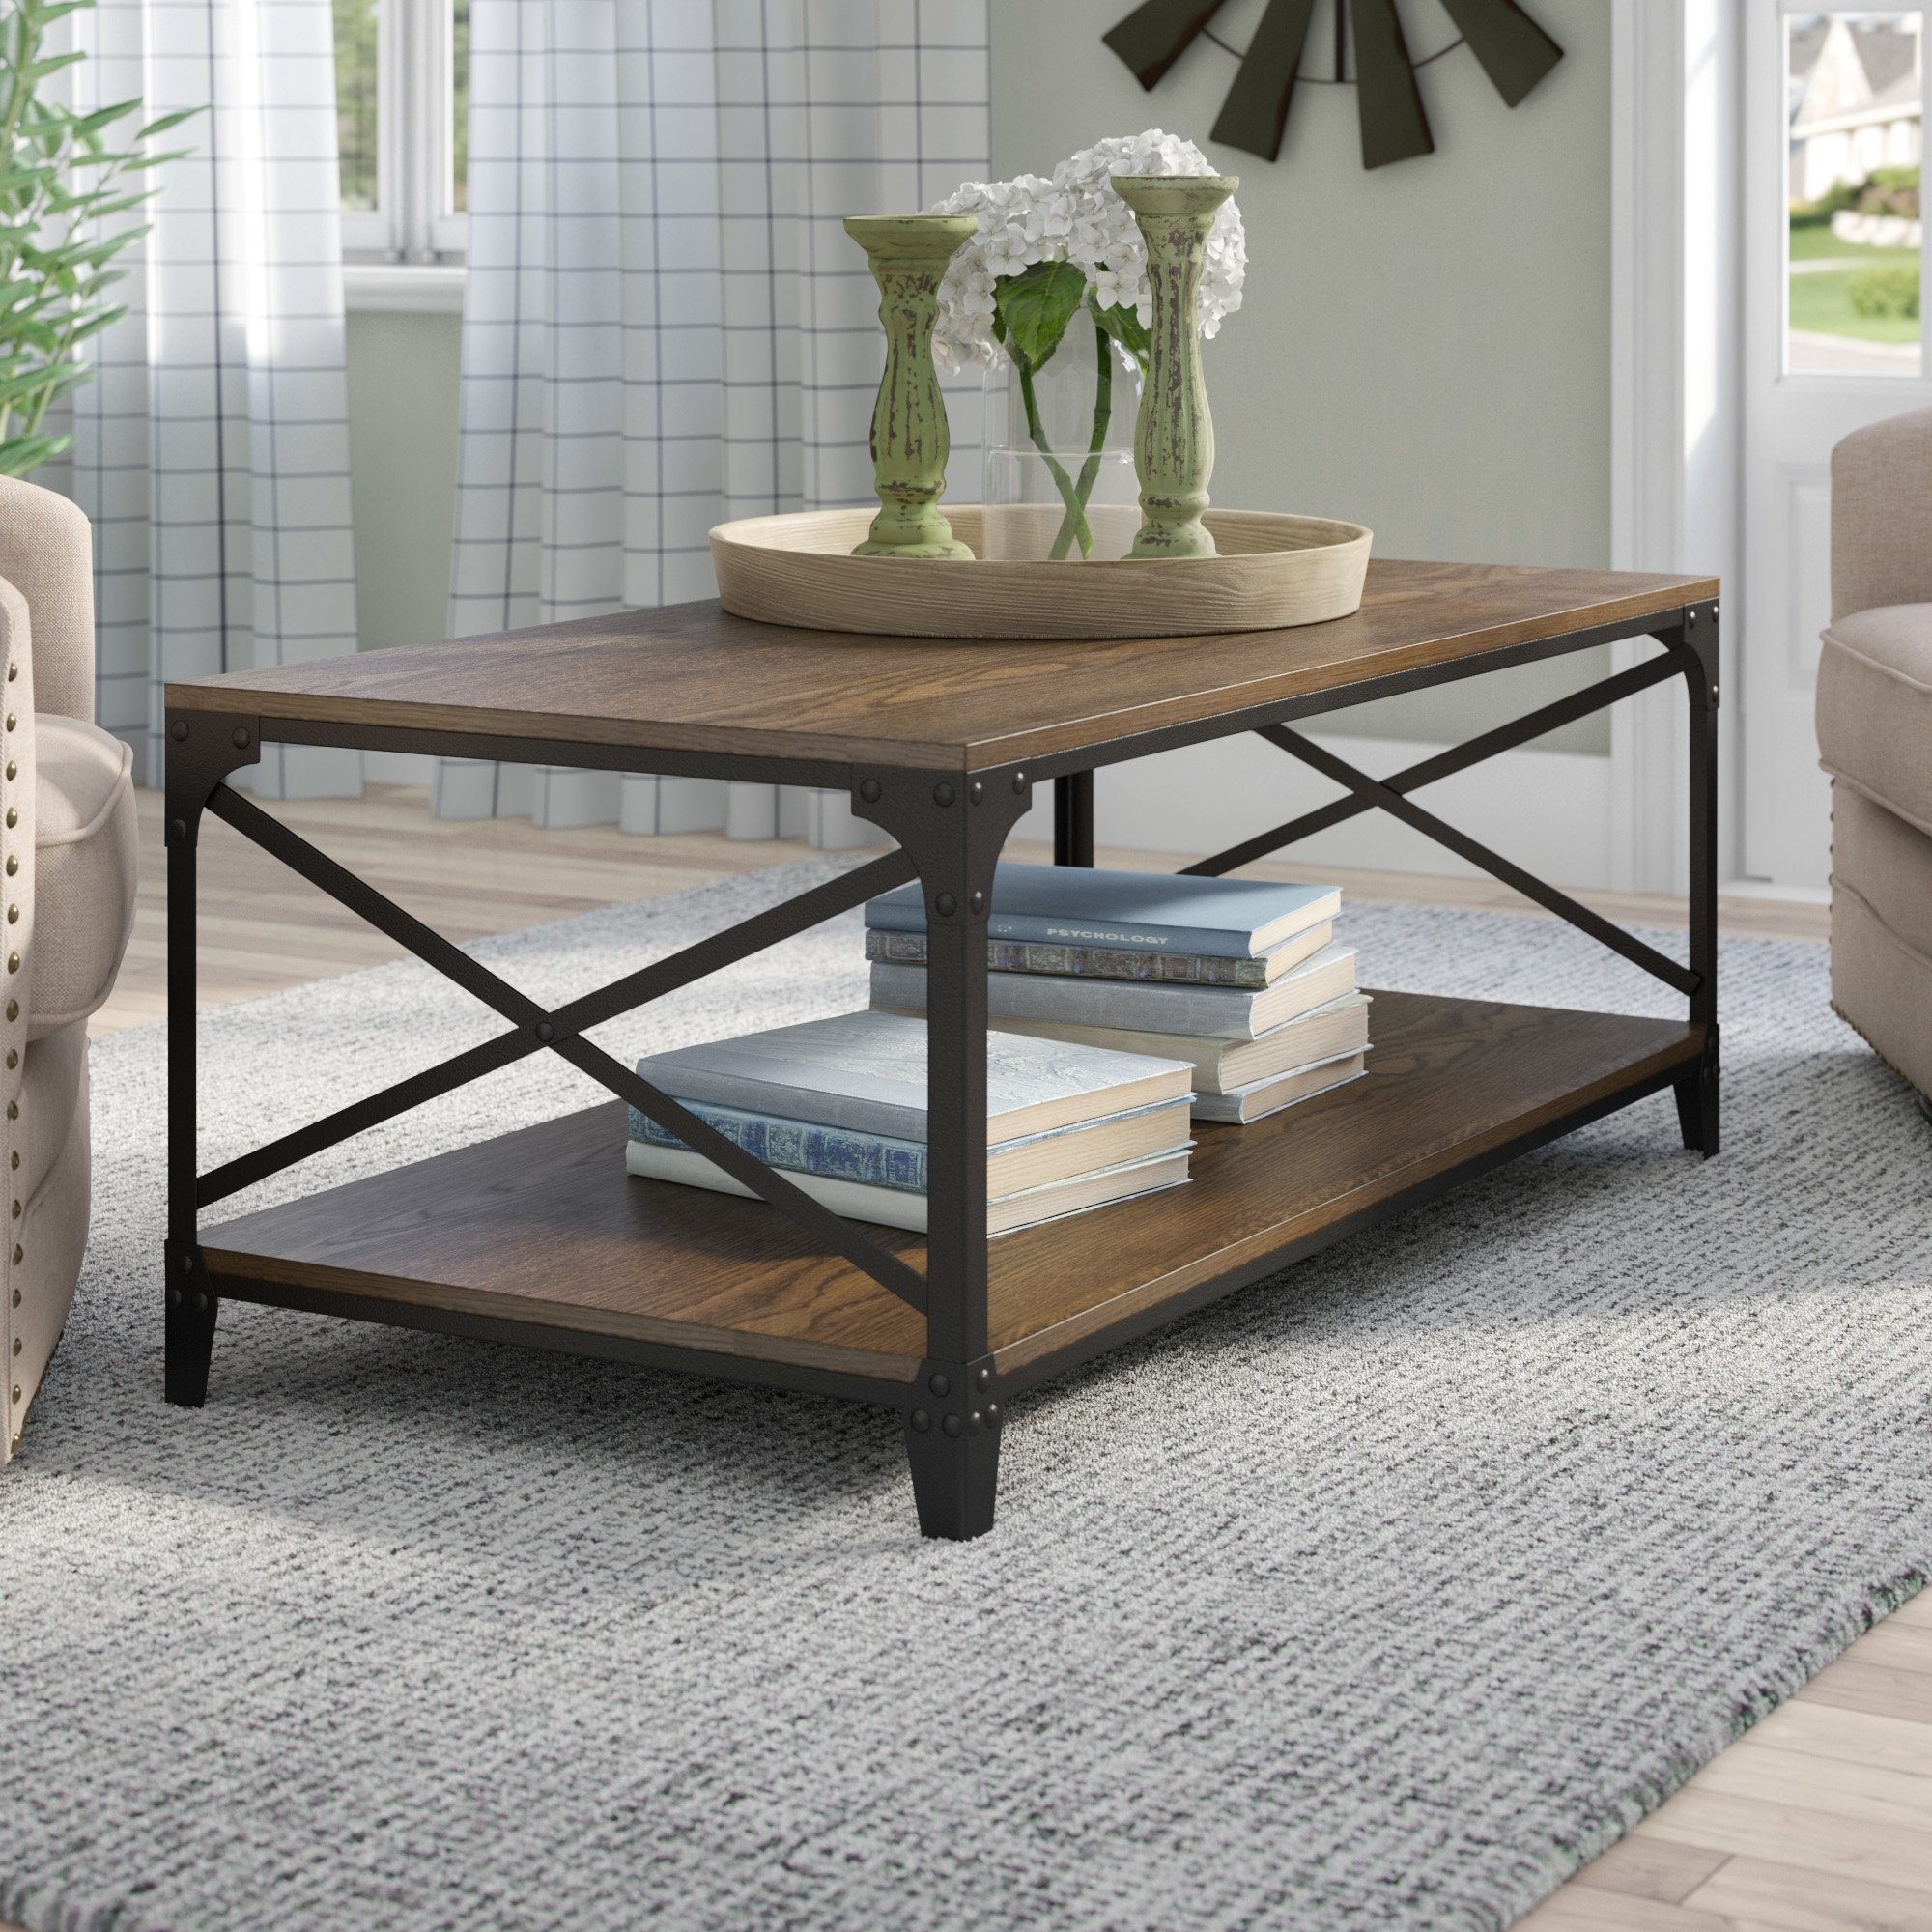 Gracie Oaks Elesa Coffee Table & Reviews | Wayfair inside Large-Scale Chinese Farmhouse Coffee Tables (Image 11 of 30)